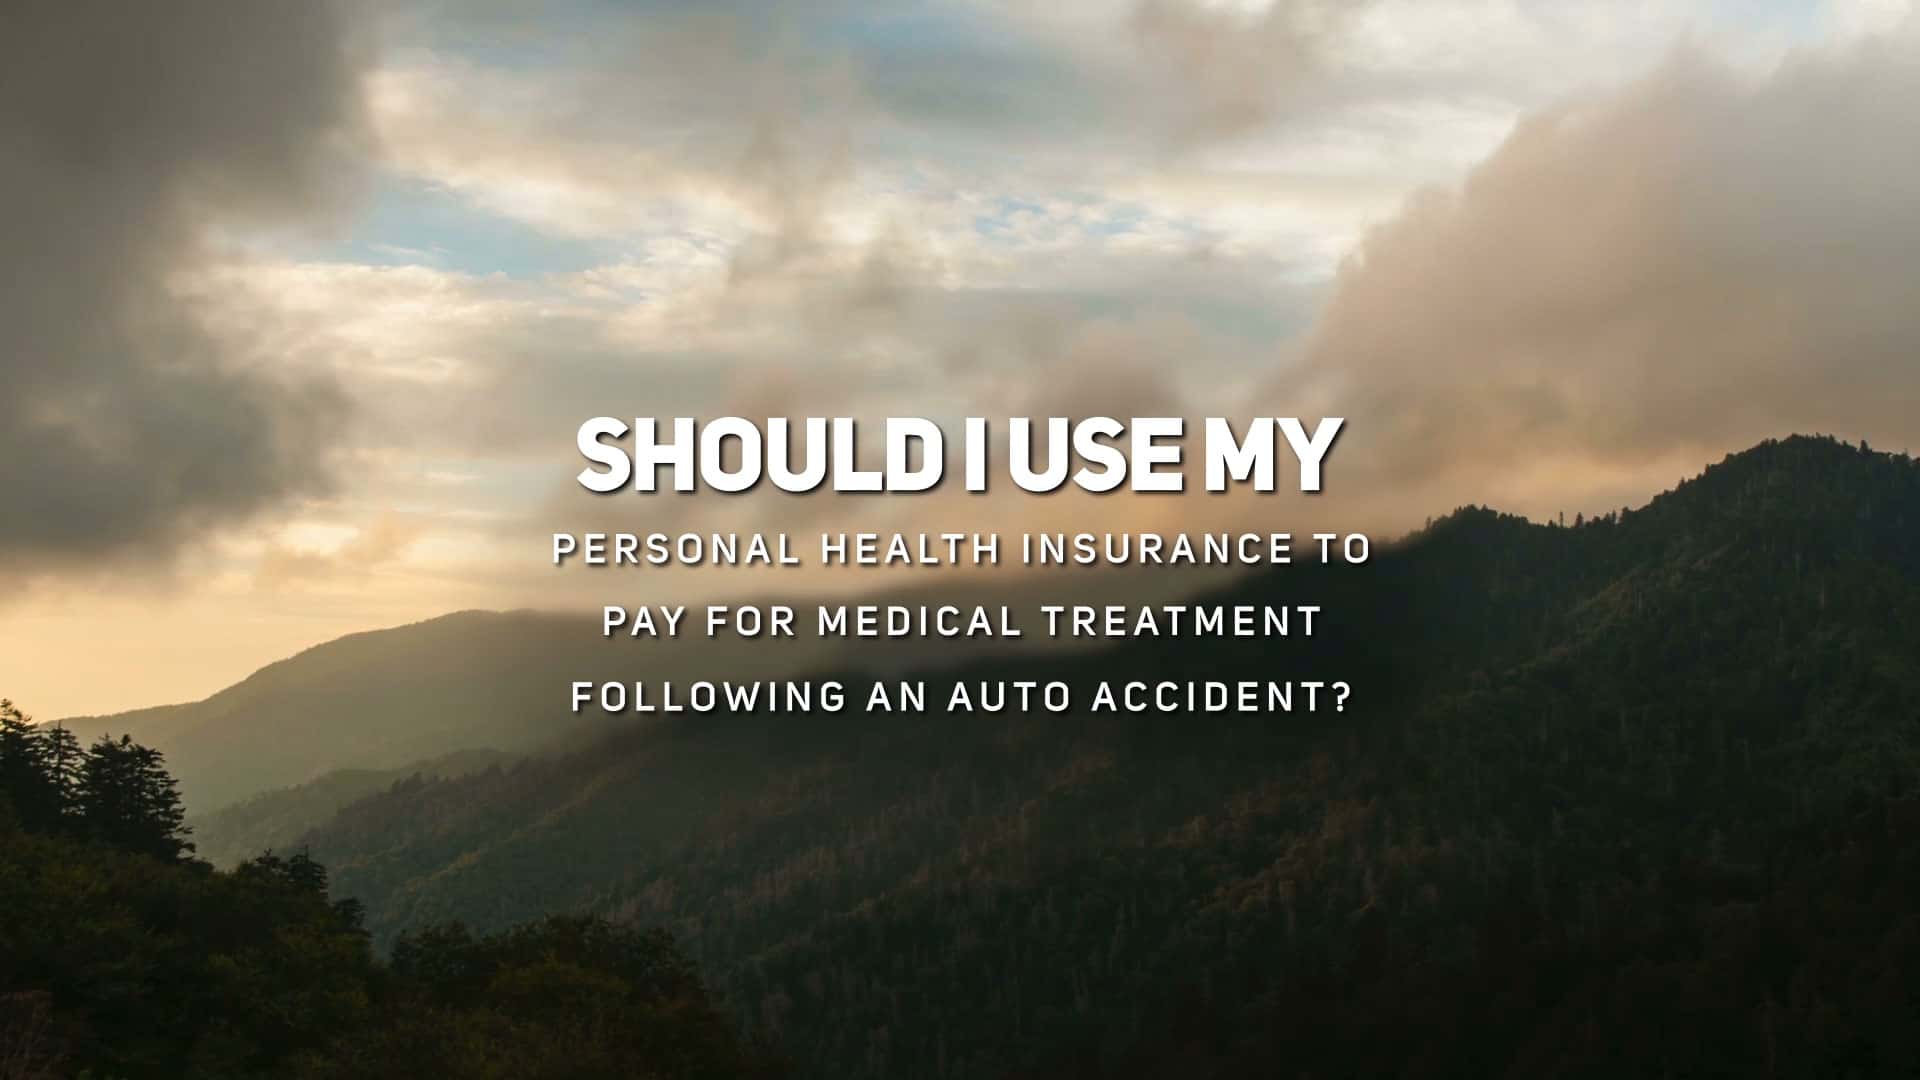 Should I Use My Personal Health Insurance to Pay for Medical Treatment Following an Auto Accident